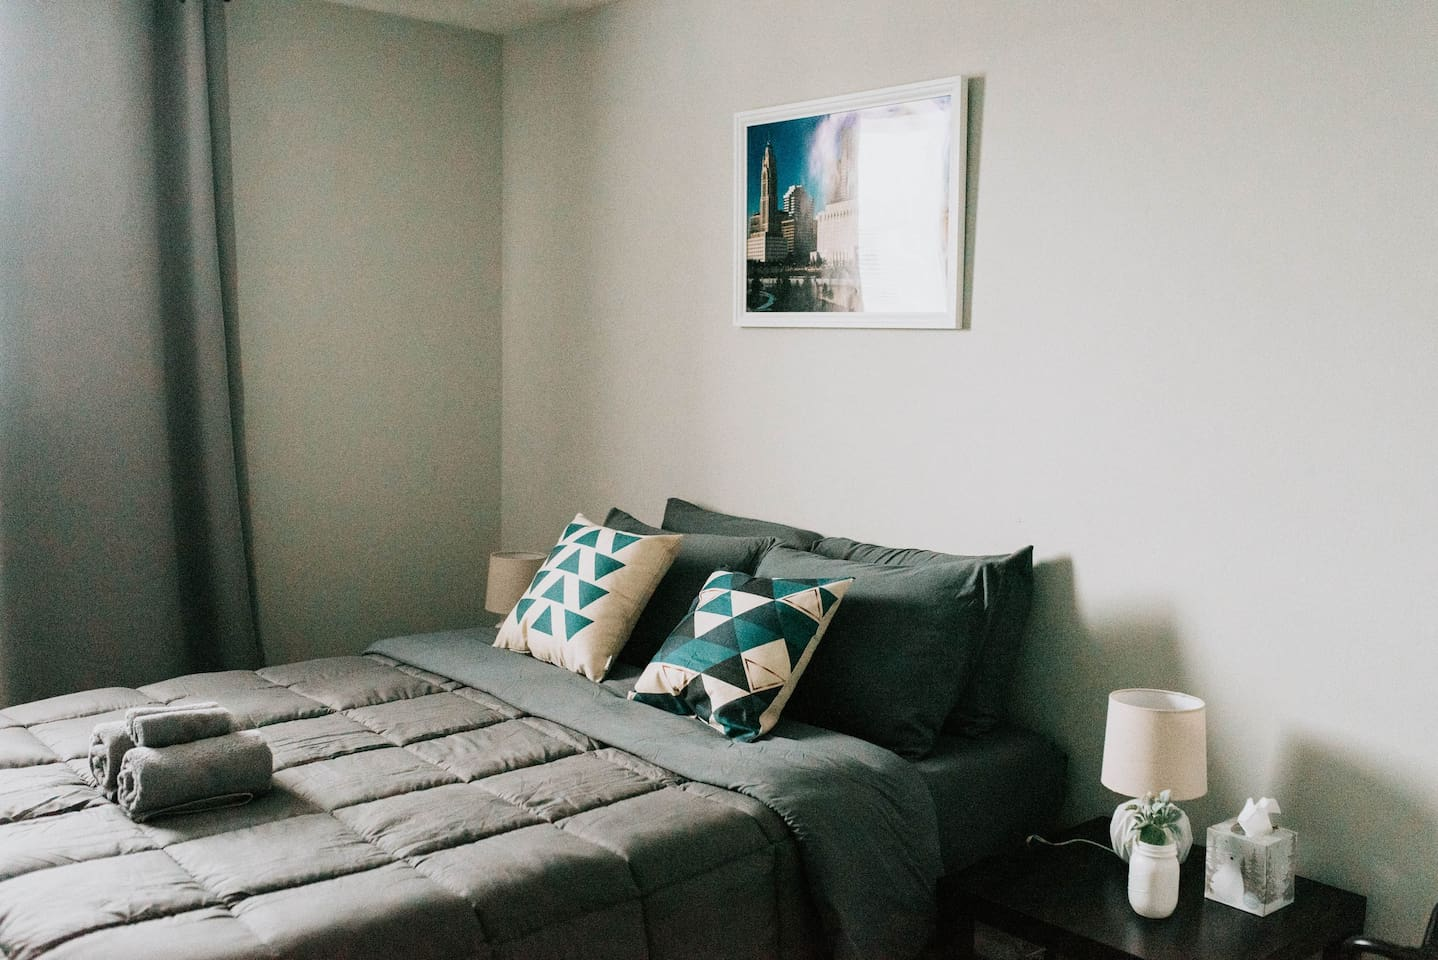 Each room has a super comfy bed and super soft pillows and lighting make each bedroom a perfect place to unwind and snooze. You will have hangers, a luggage rack and iron and board for your trip!